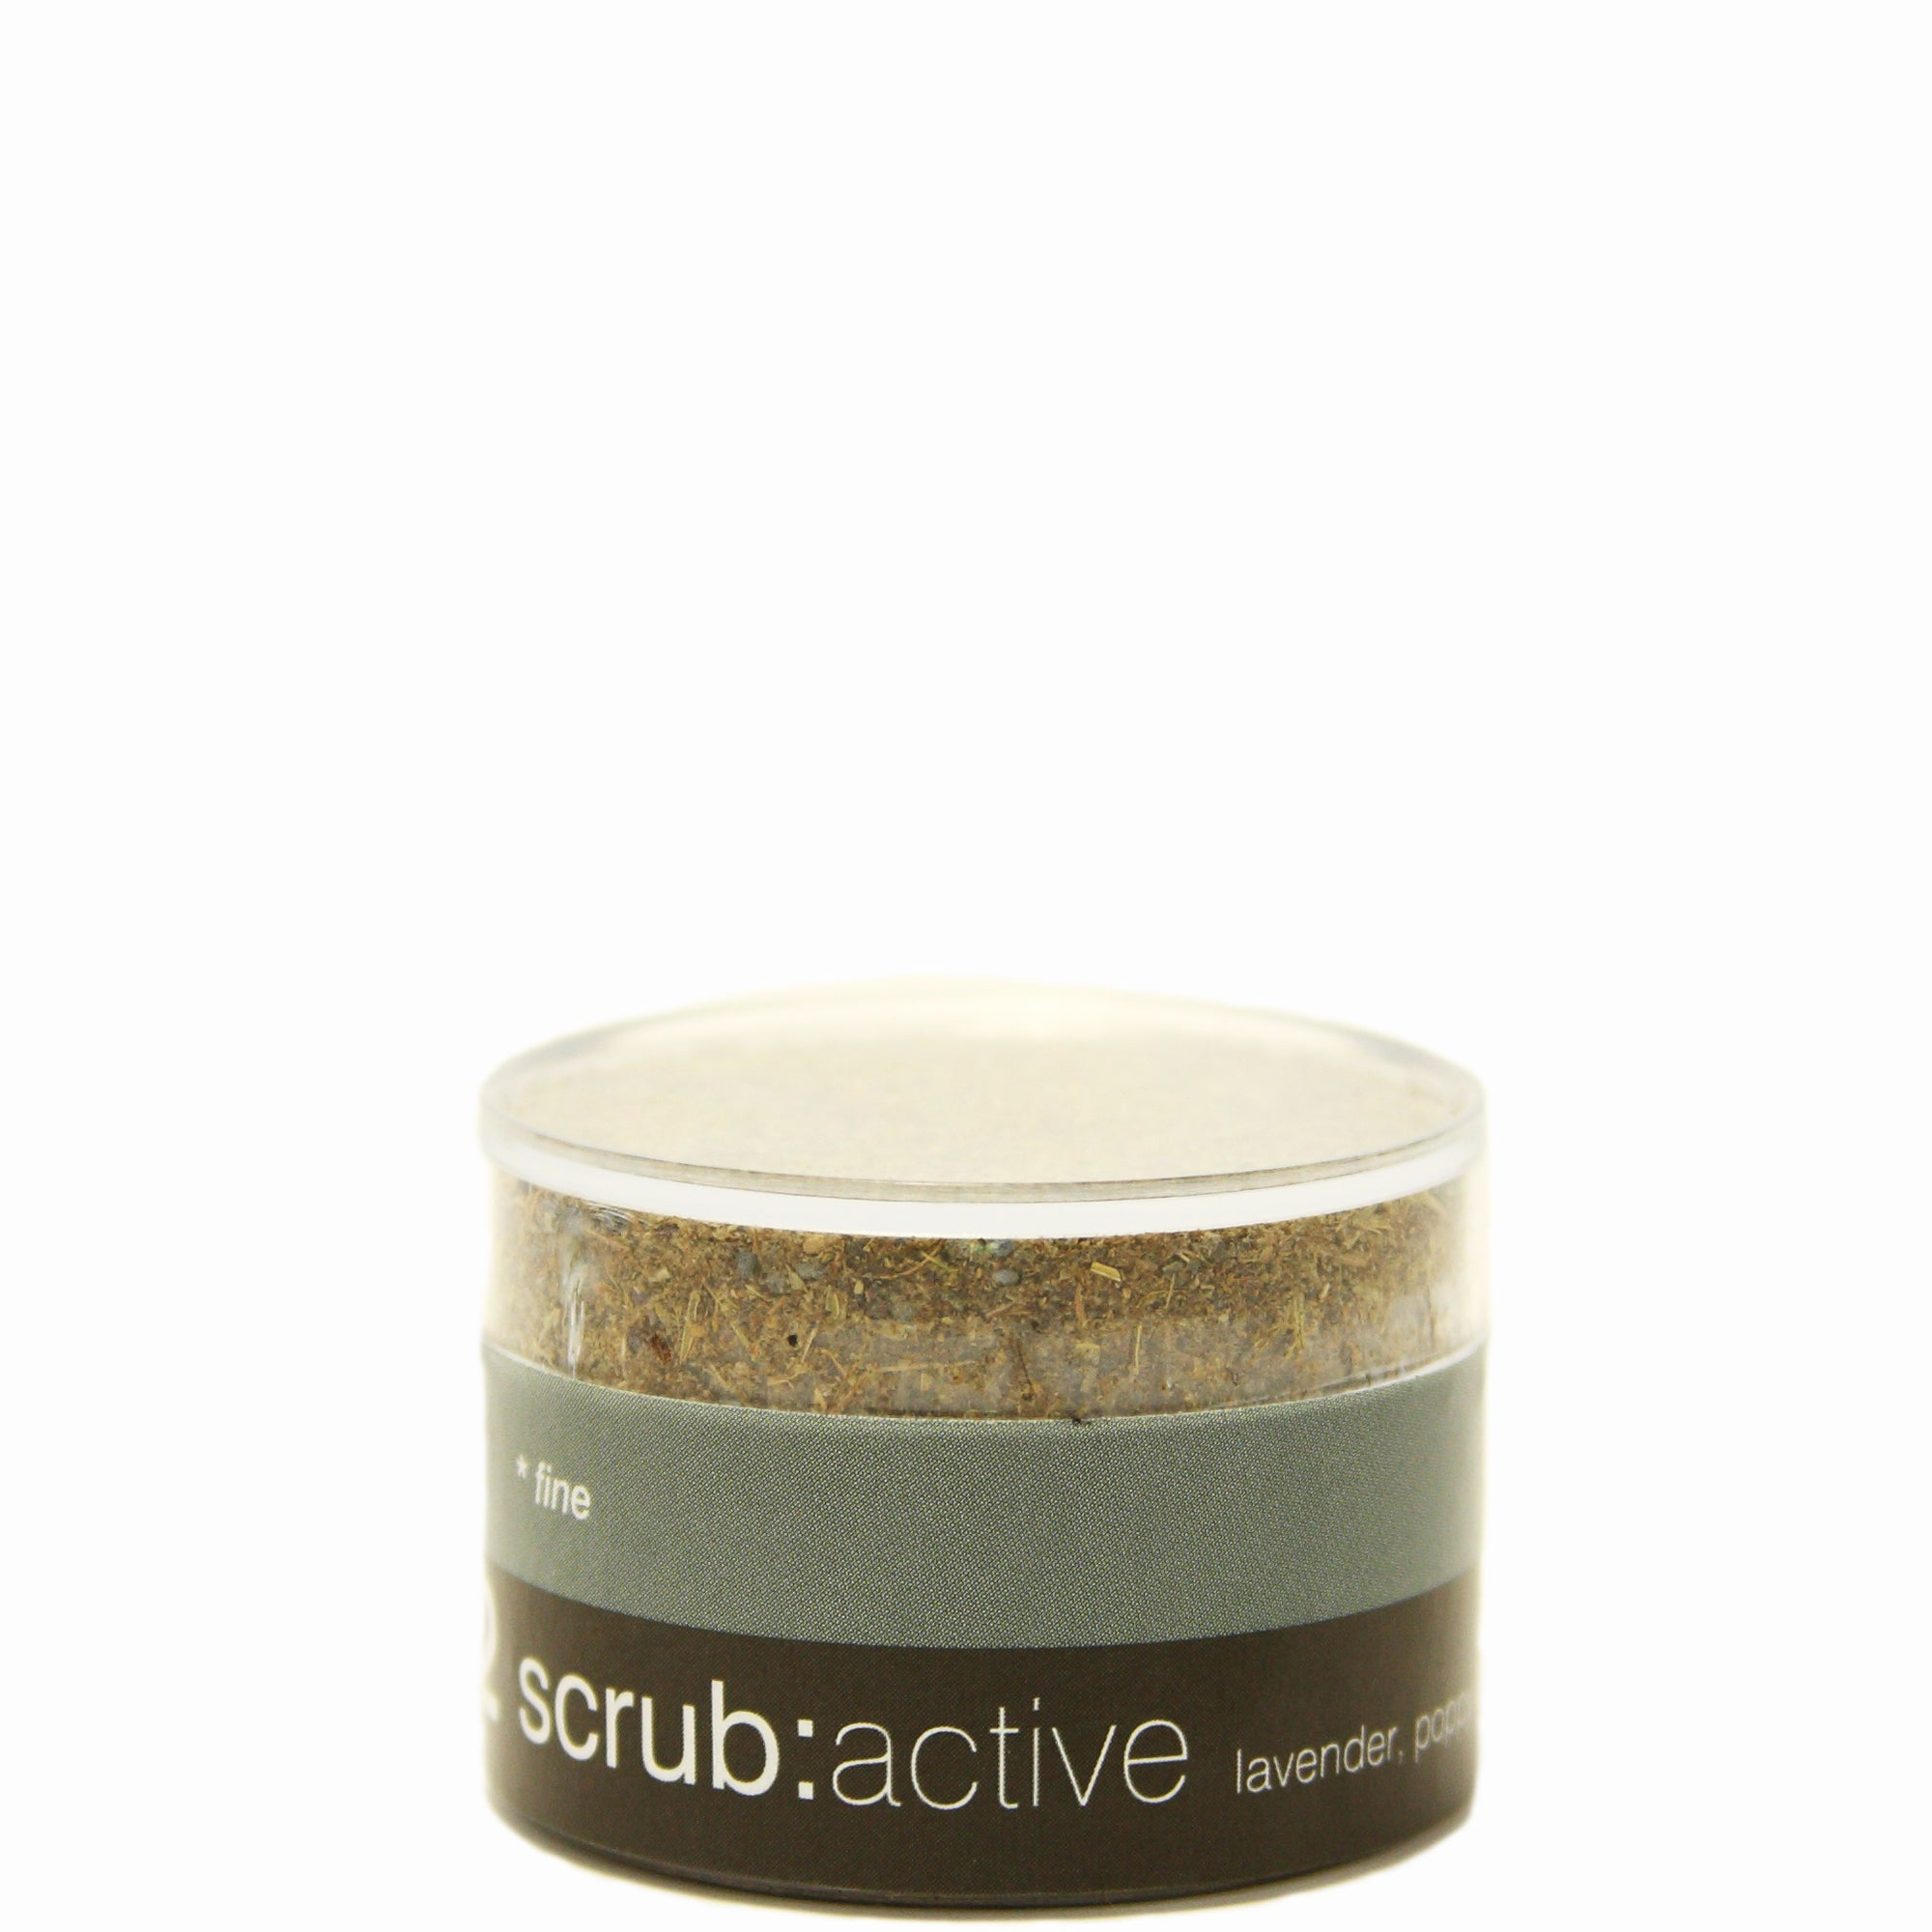 lavender, poppy seed and tea tree scrub active